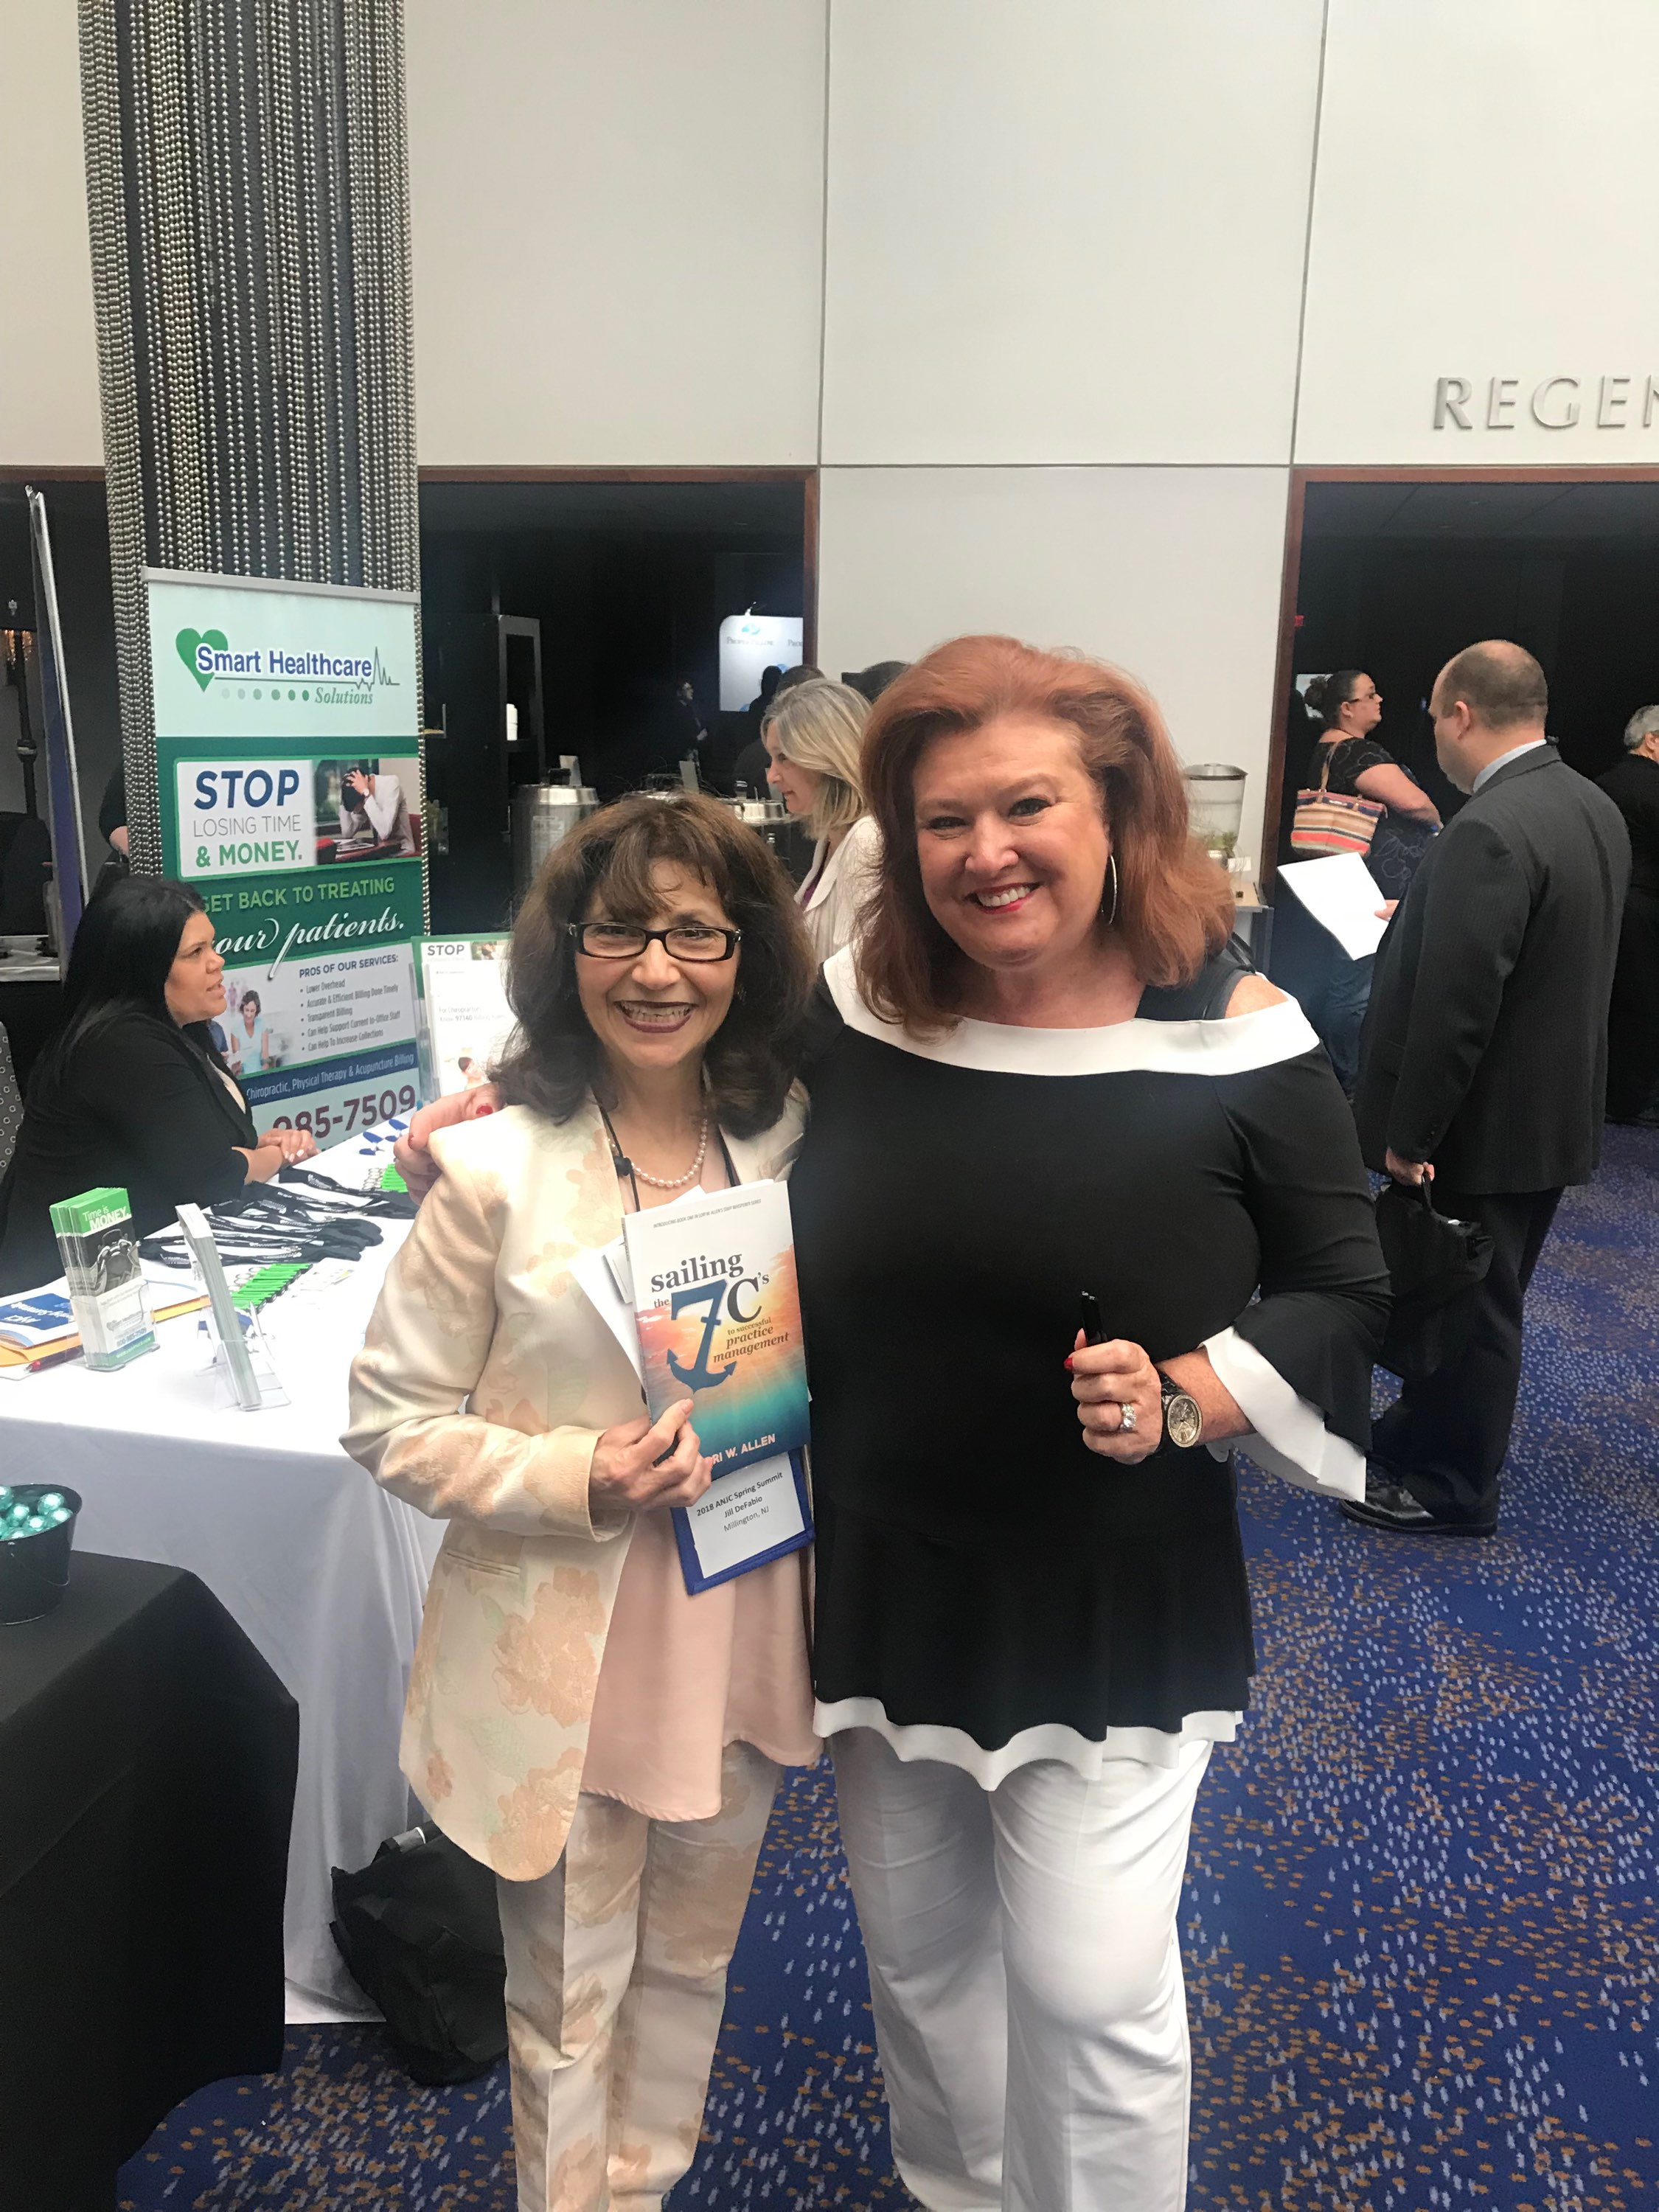 May 2018 Association of New Jersey Chiropractors Lori Book Signing-1